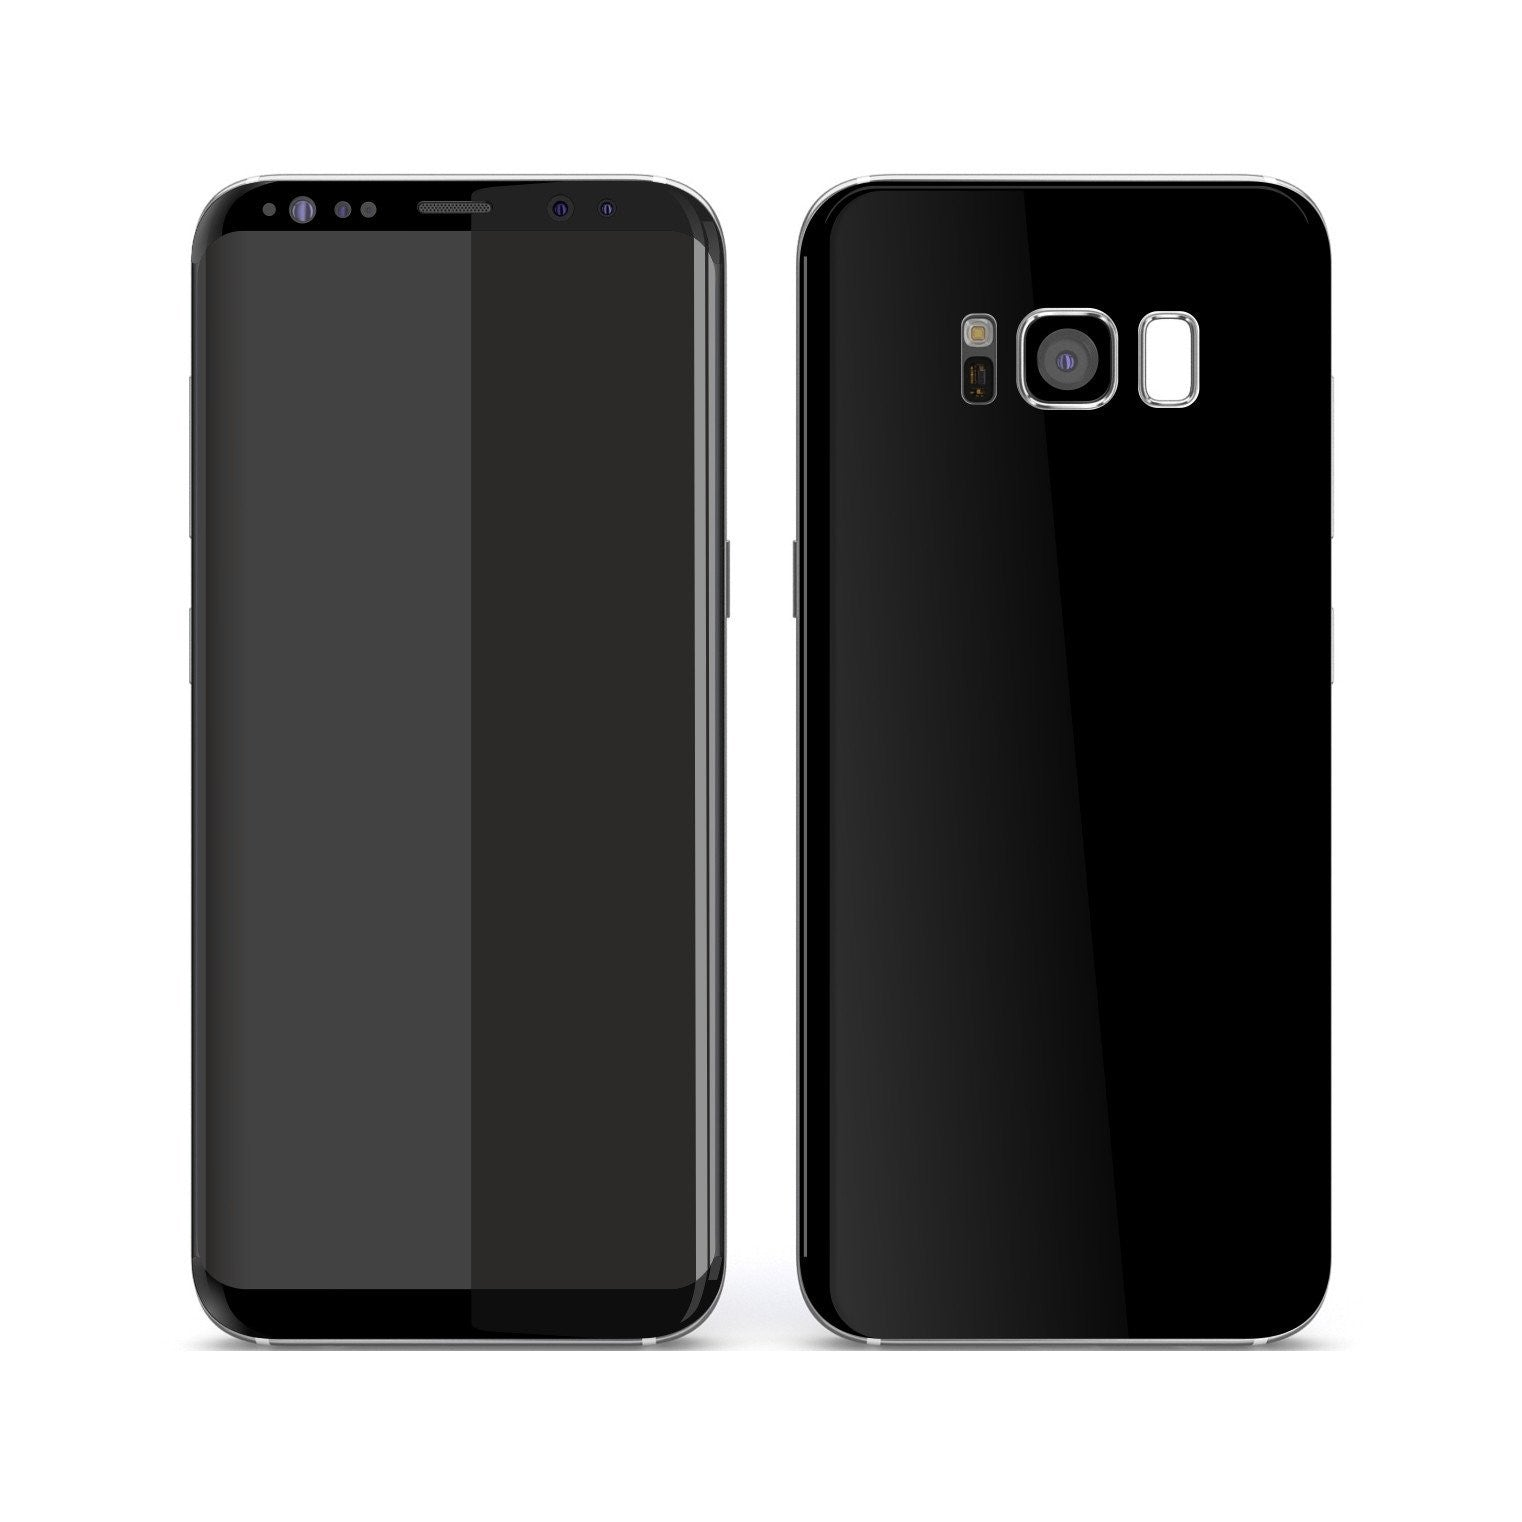 Samsung Galaxy S8+ Black Matt Skin, Decal, Wrap, Protector, Cover by EasySkinz | EasySkinz.com